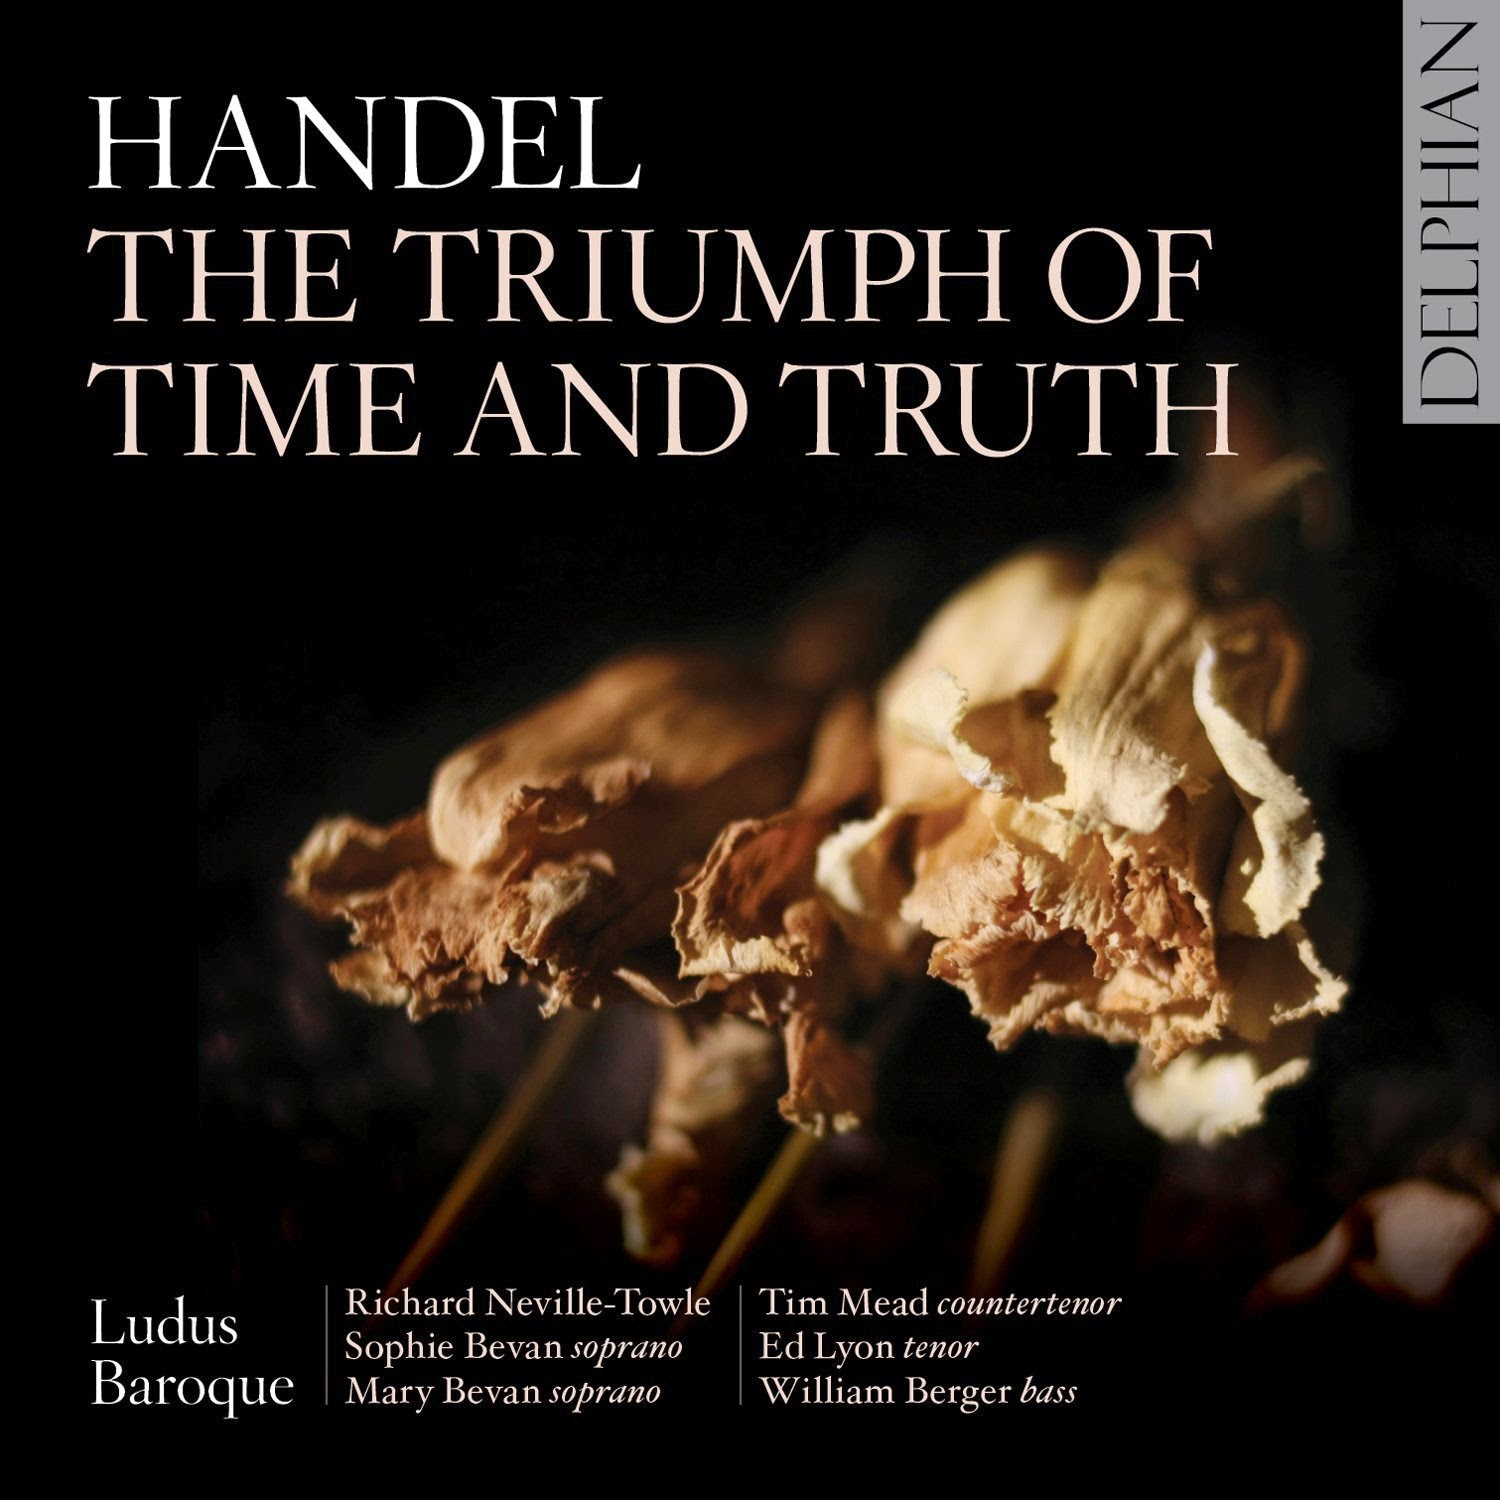 Handel - The Triumph of Time and Truth